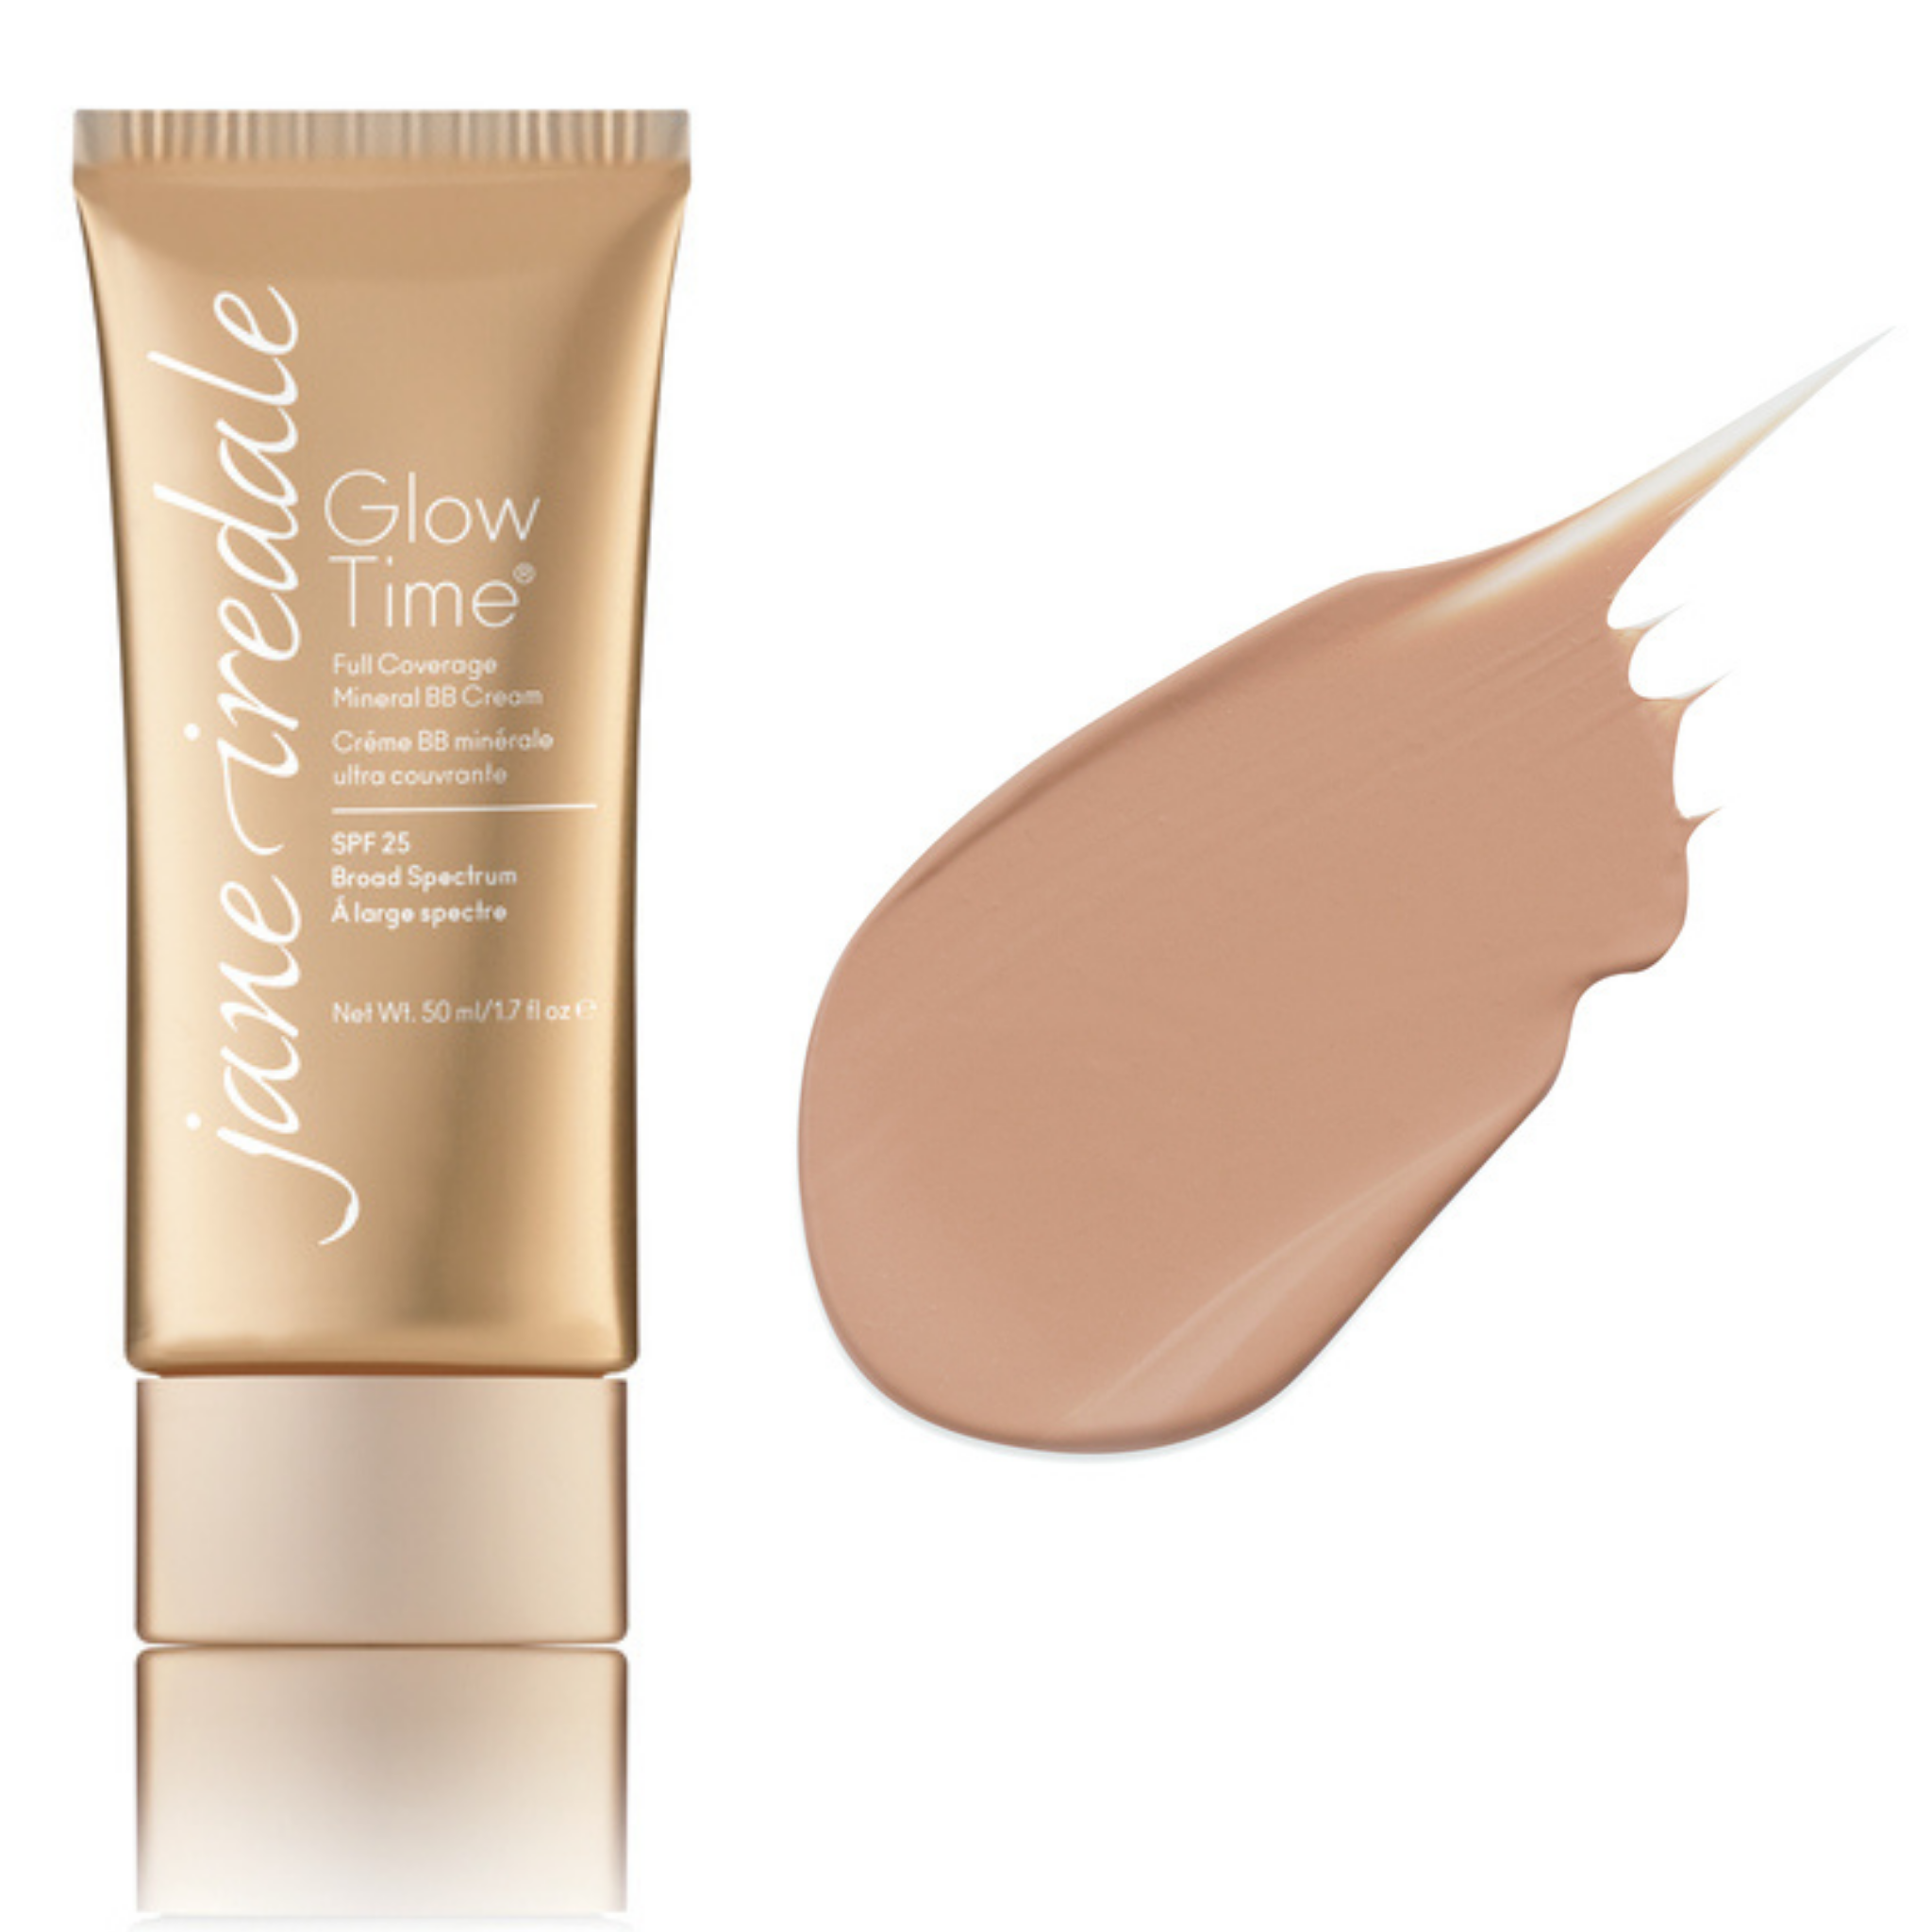 Glow Time Mineral BB Cream - Jane Iredale